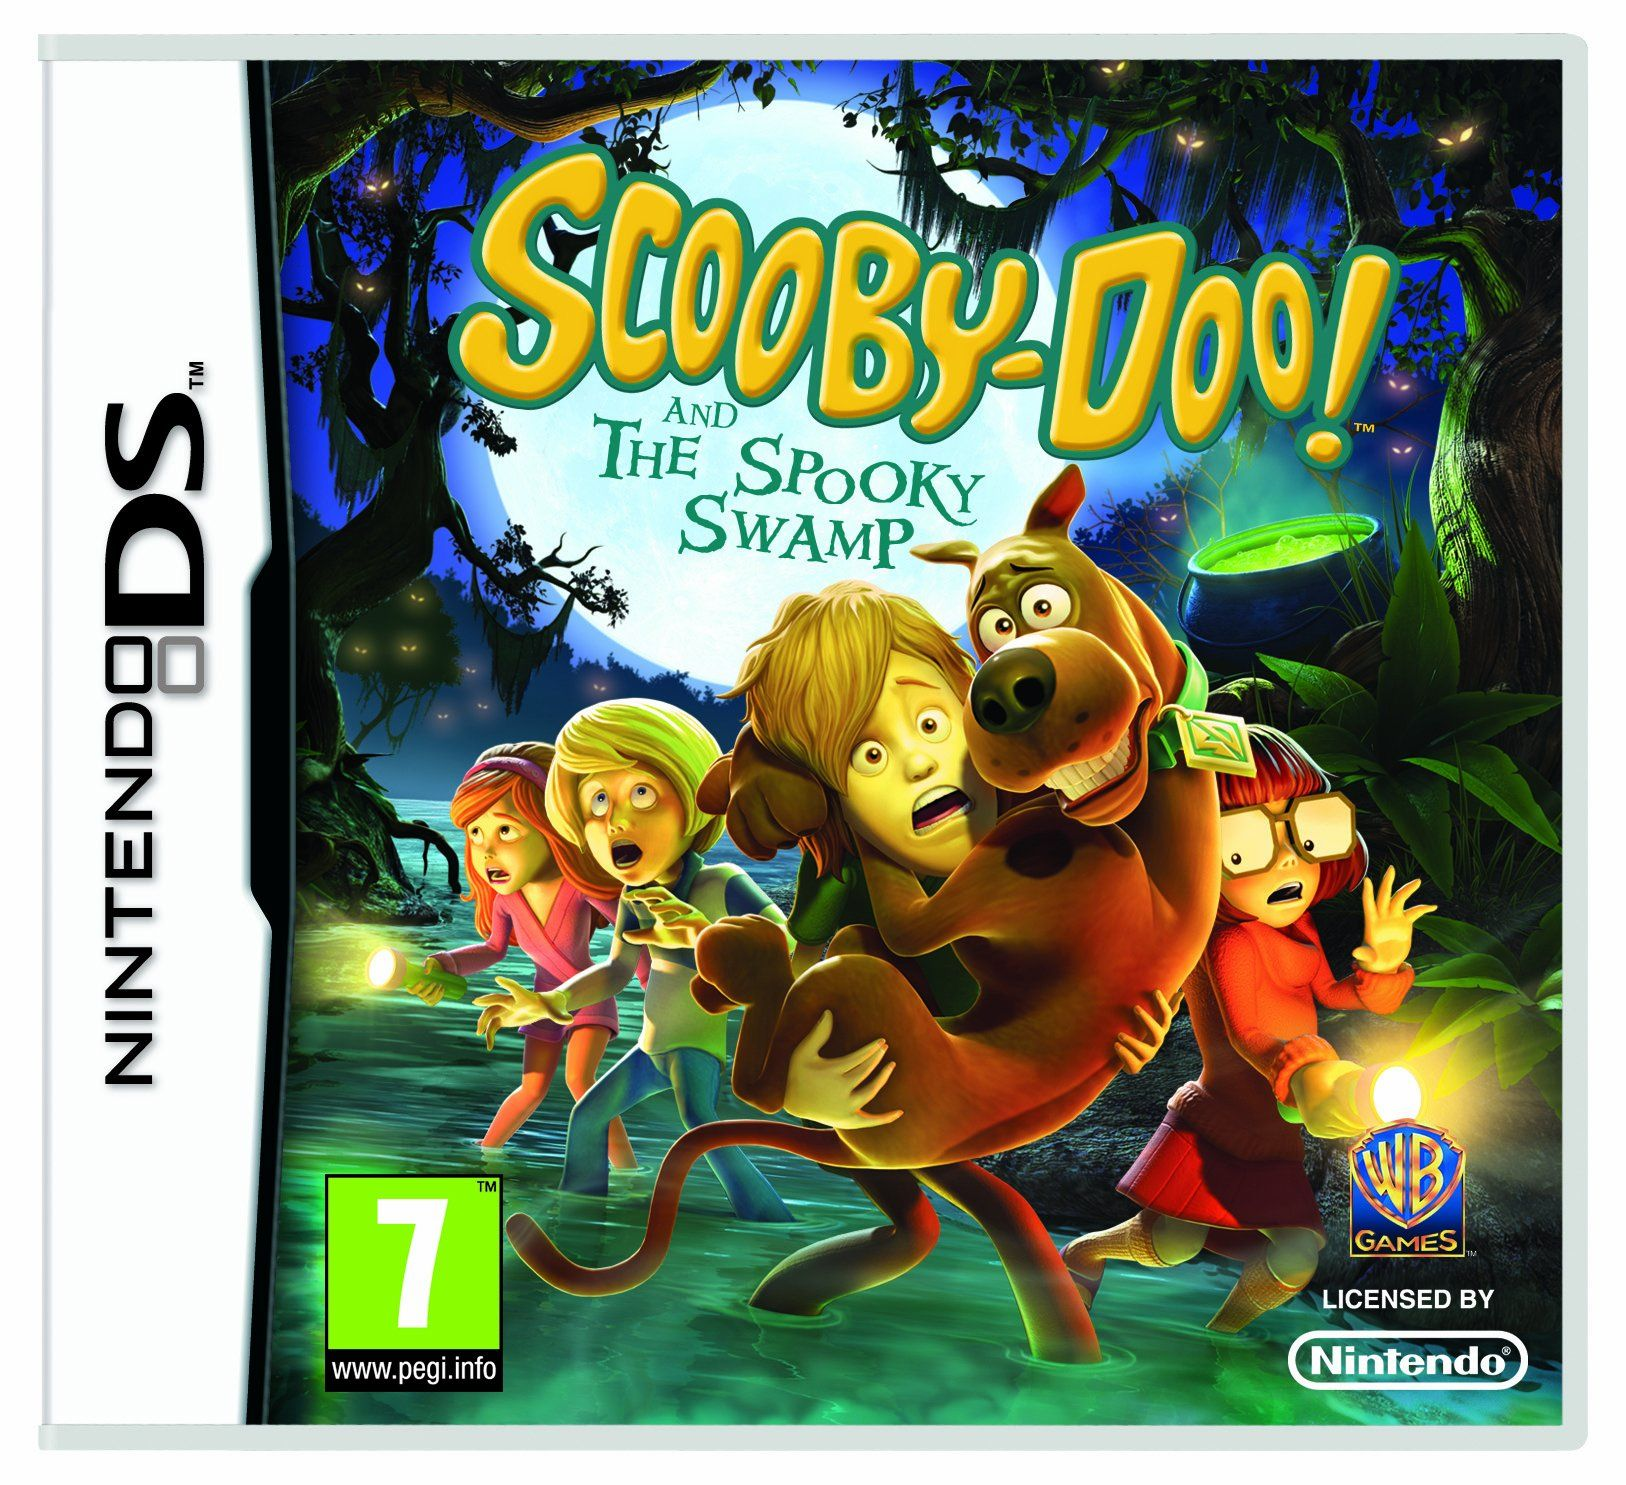 Scooby Doo And The Spooky Swamp Nintendo Ds Http Www Scooby Doo Spooky Swamp Nintendo Ds Dp B003oqdjdw Ref Sr 1 41 S Scooby Doo Scooby Wii Games